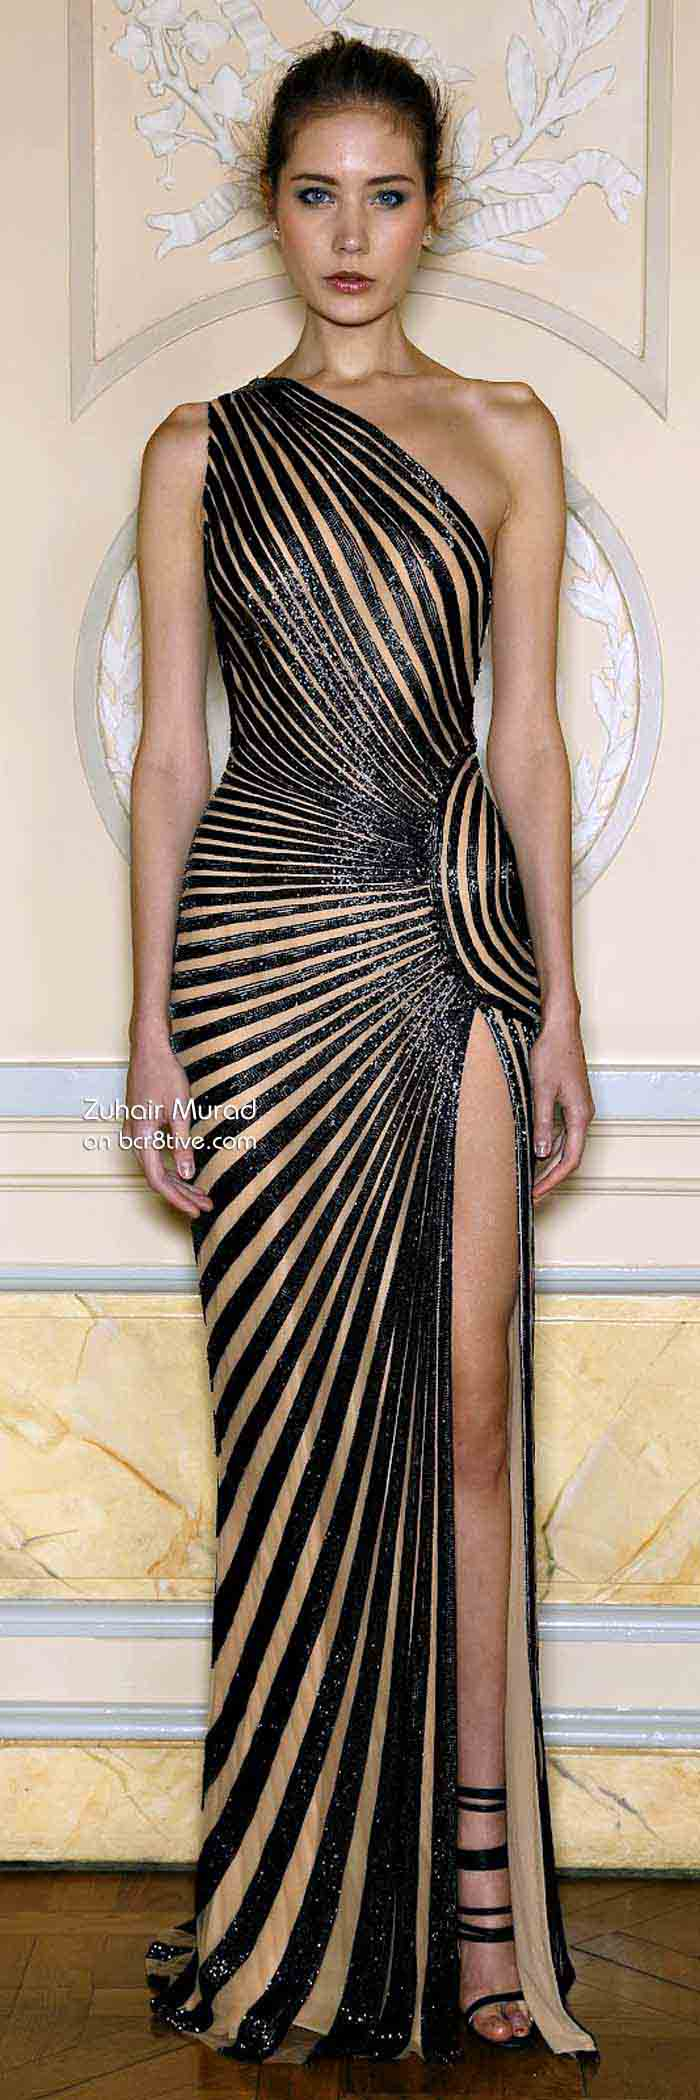 Zuhair murad spring summer ready to wear collection fab gowns